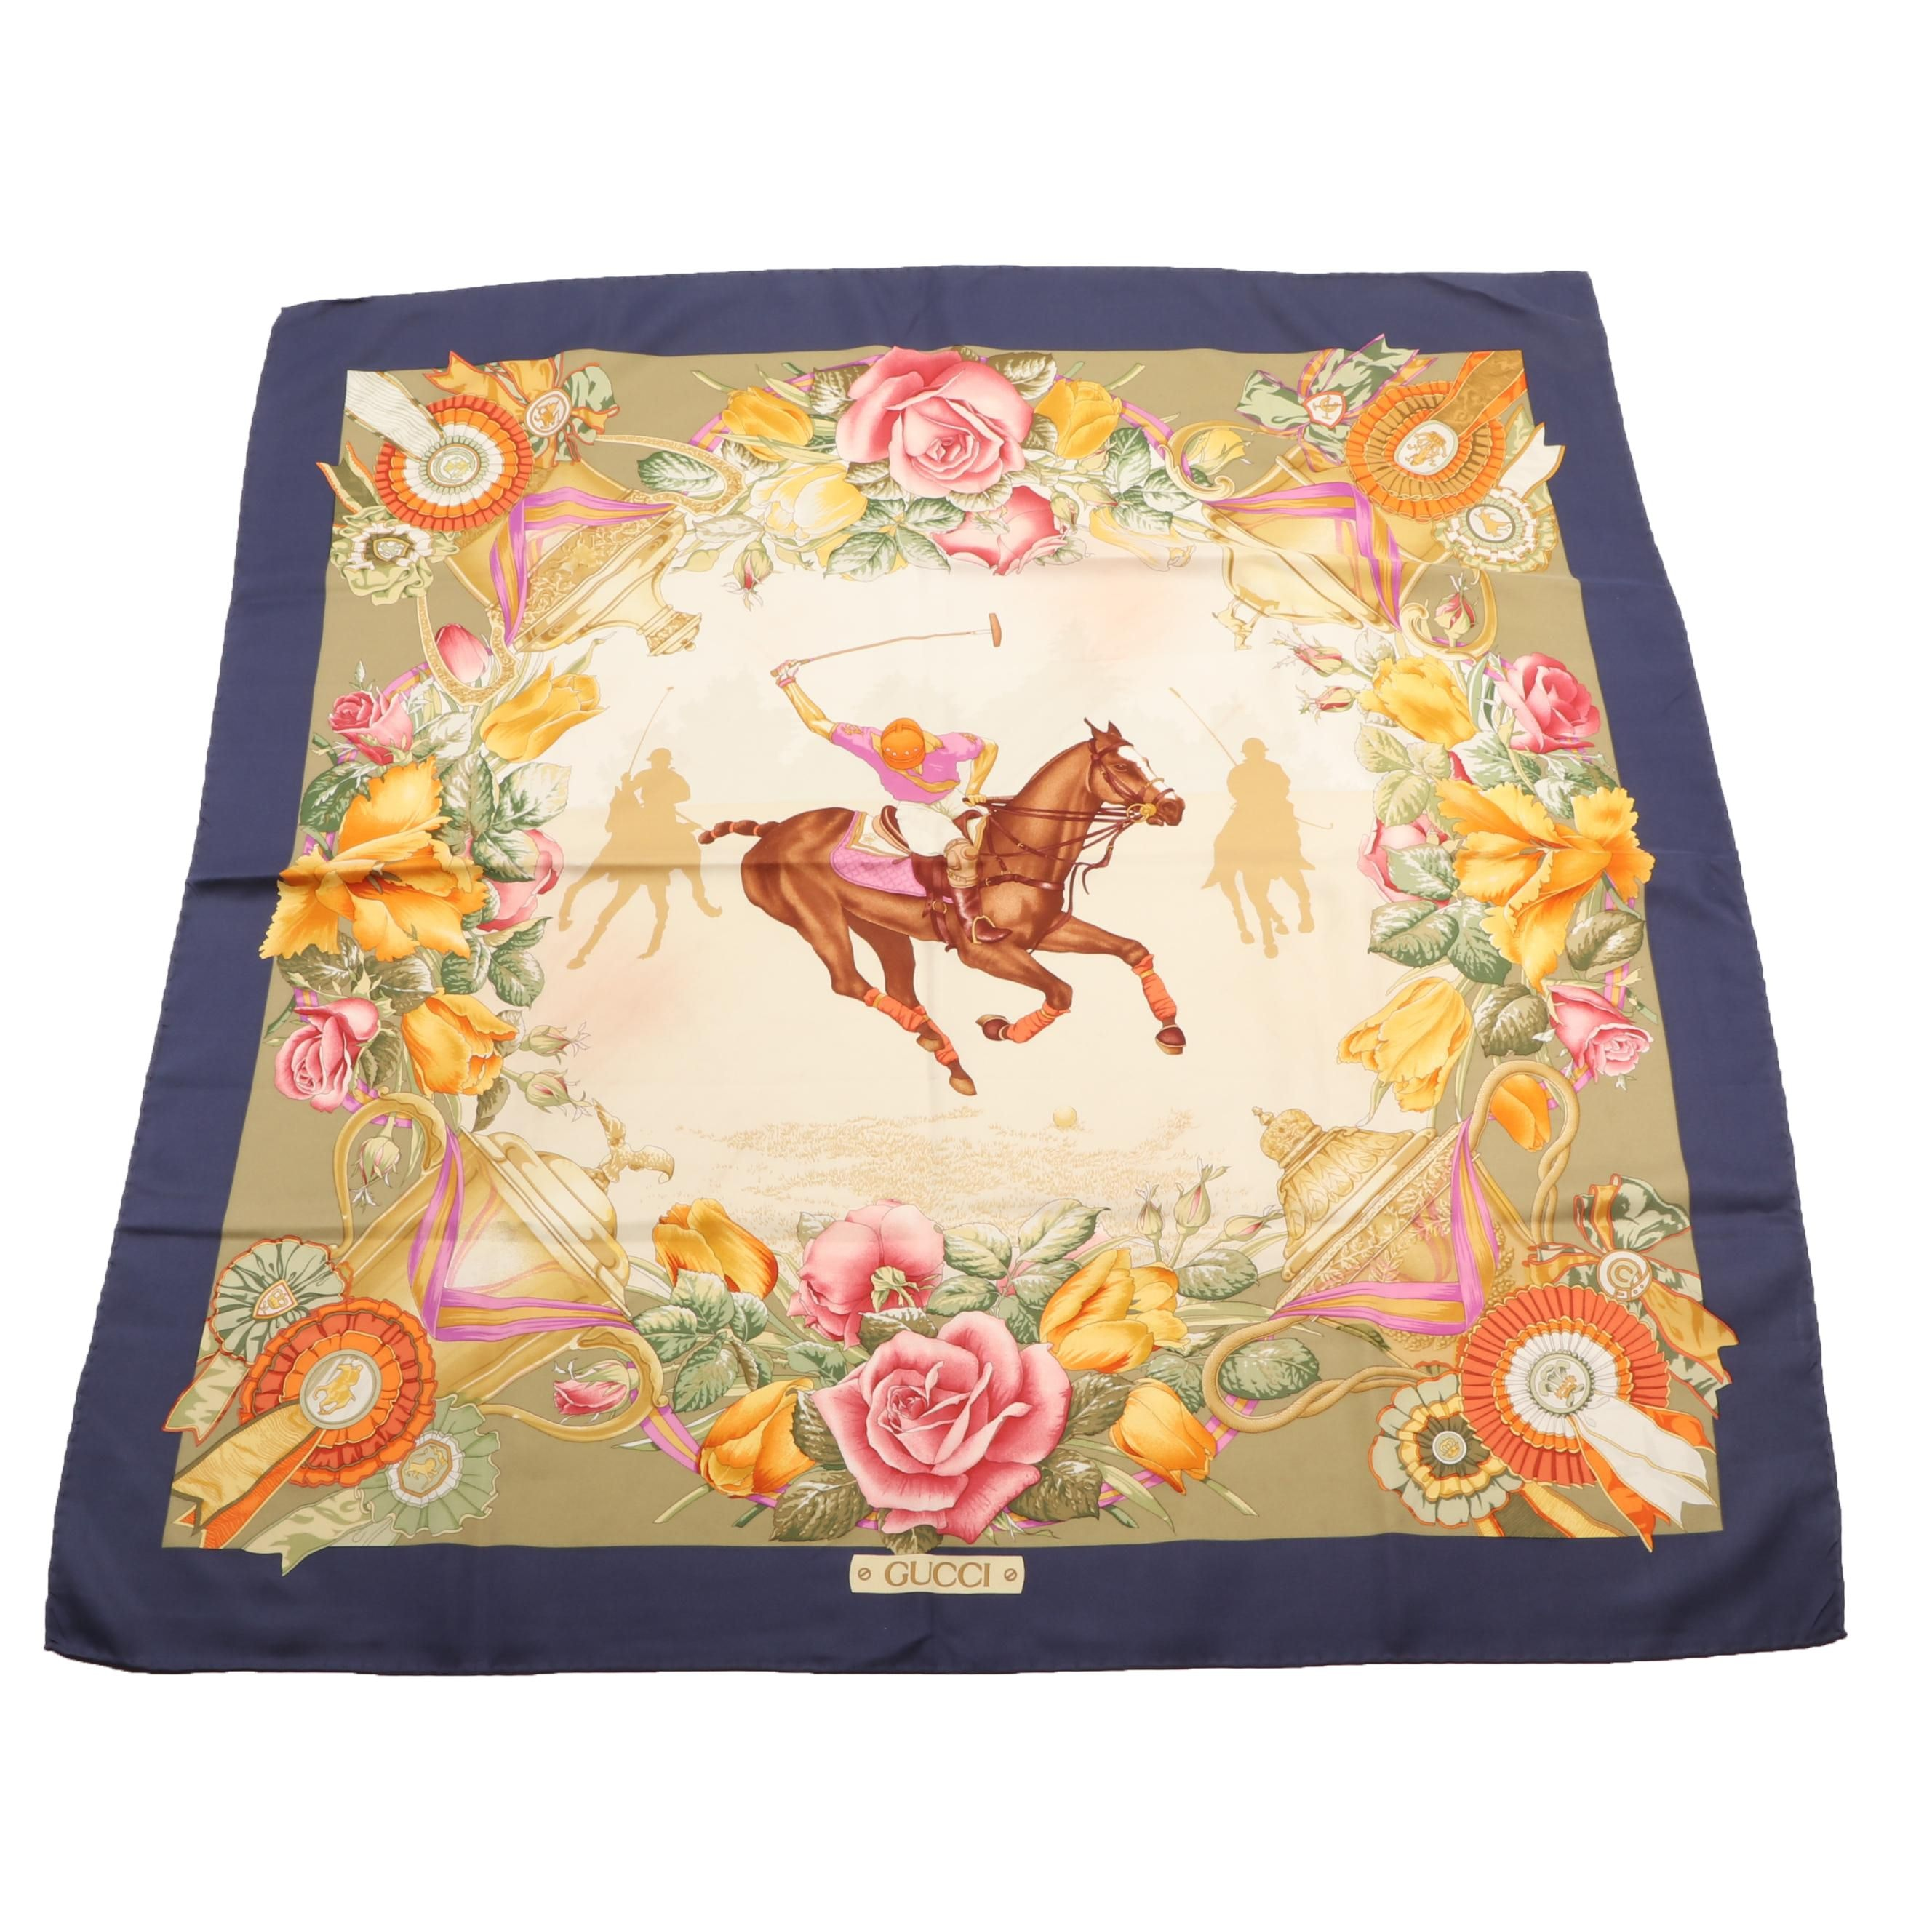 Gucci Polo and Floral Print Silk Scarf, Made in Italy